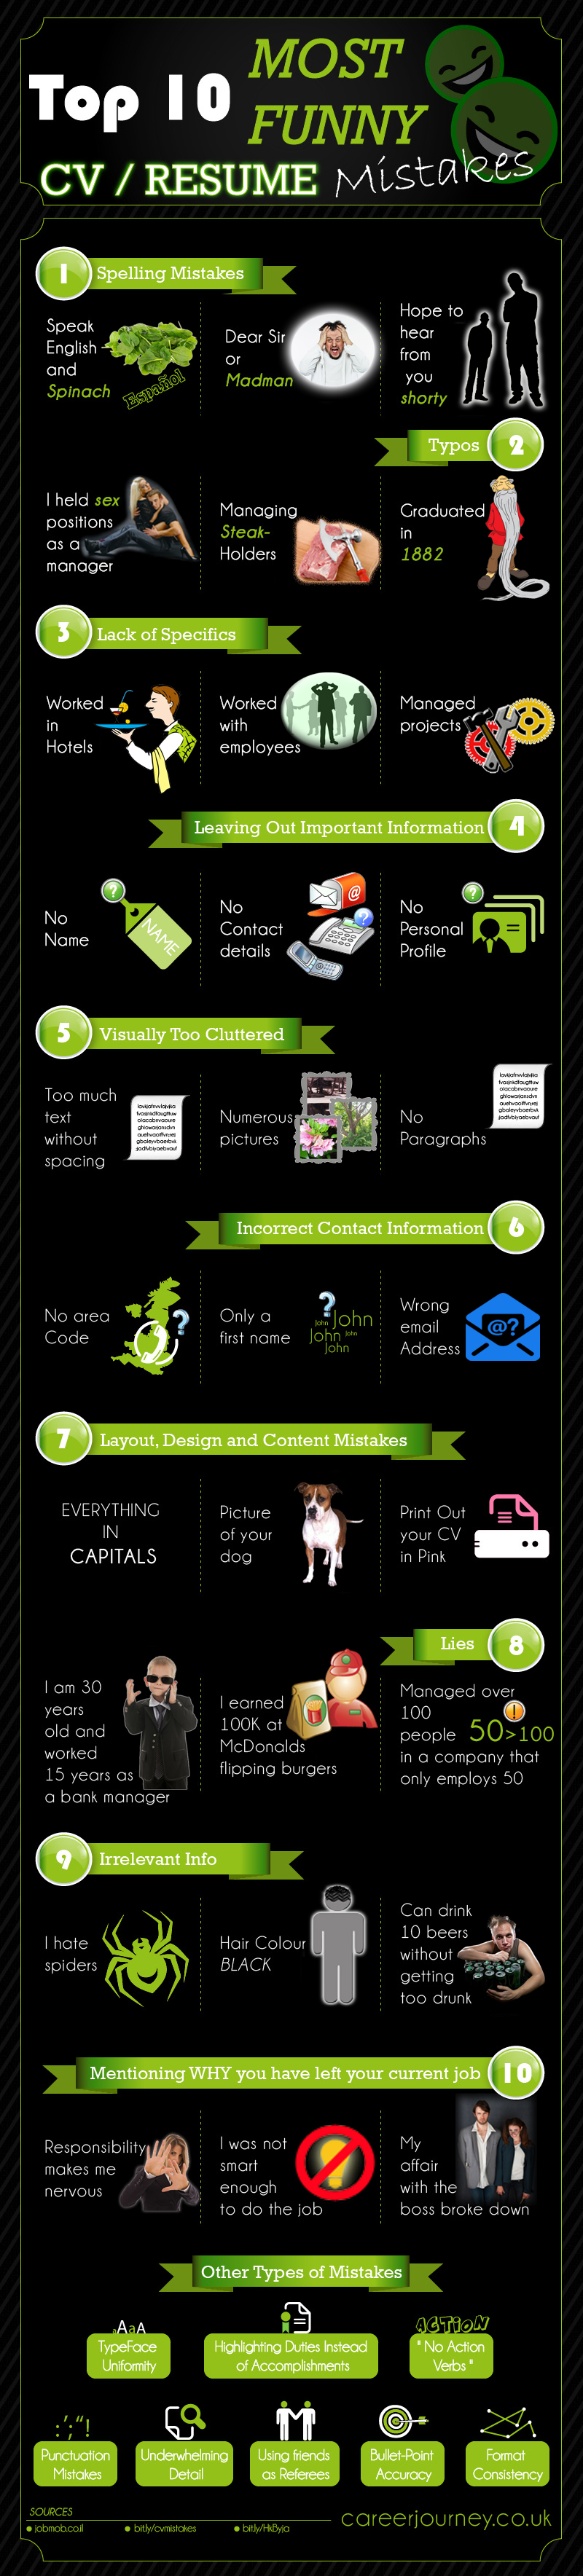 Top 10 CV Resume Mistakes #infographic